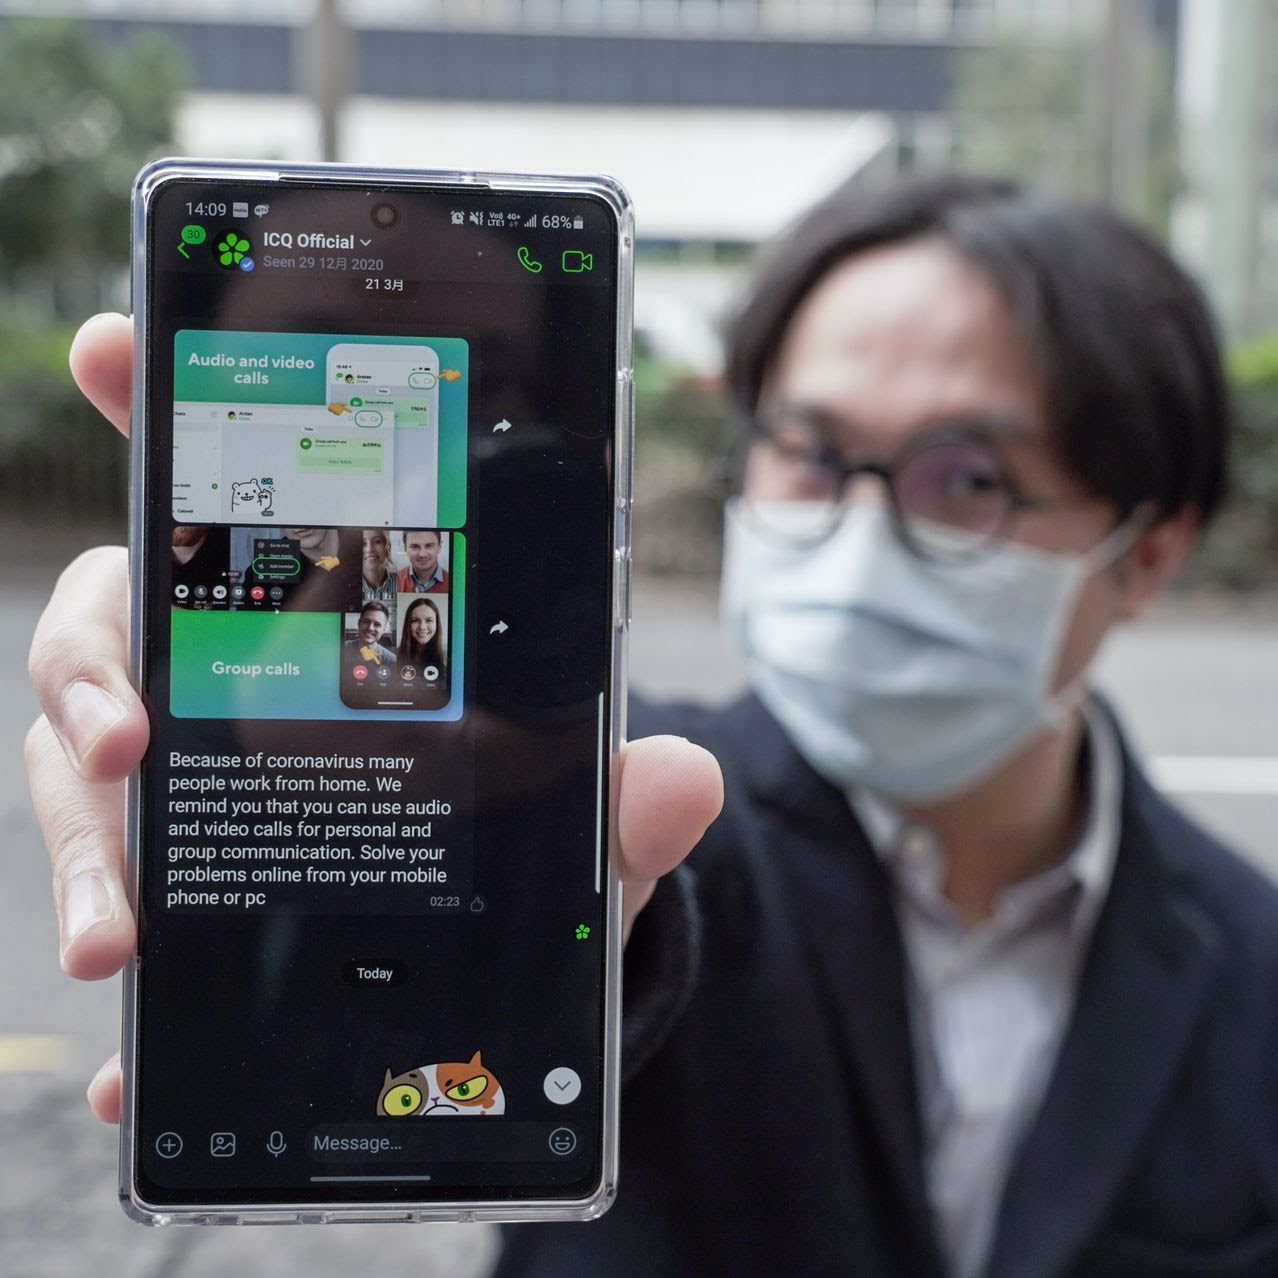 Anthony Wong showed an ICQ chat on his phone last week.